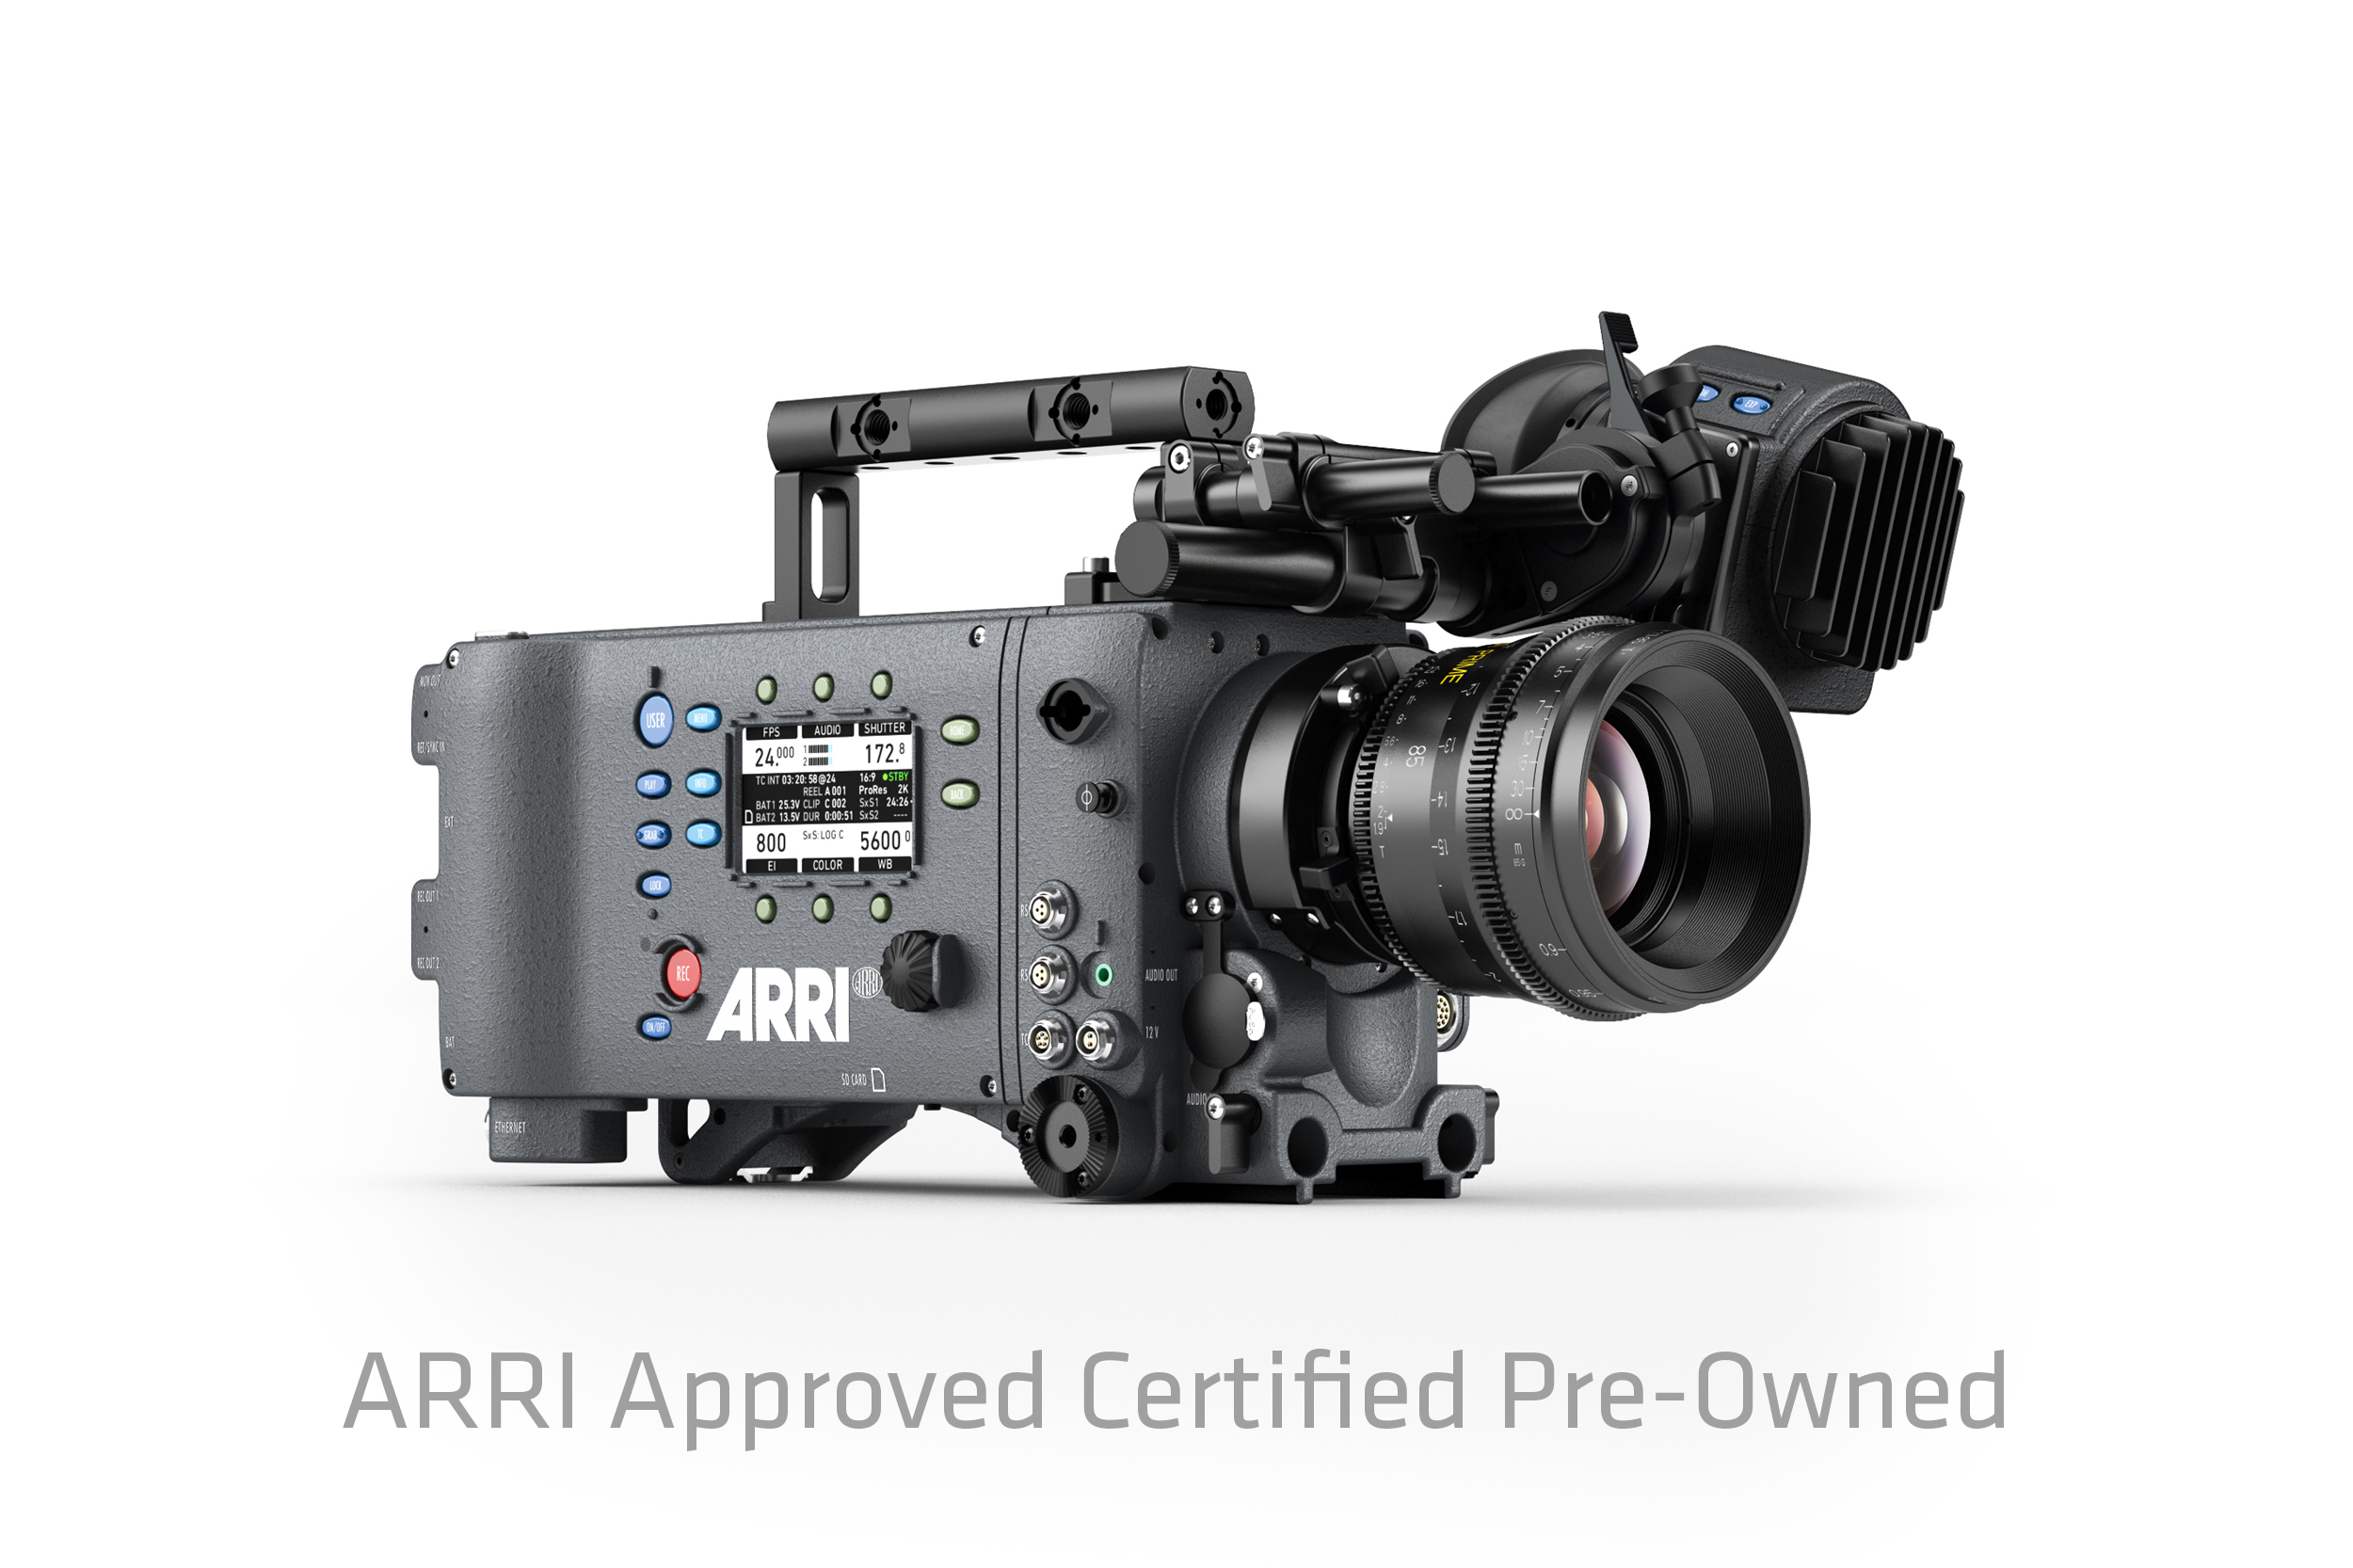 arri approved certified pre owned program buy a second hand alexa